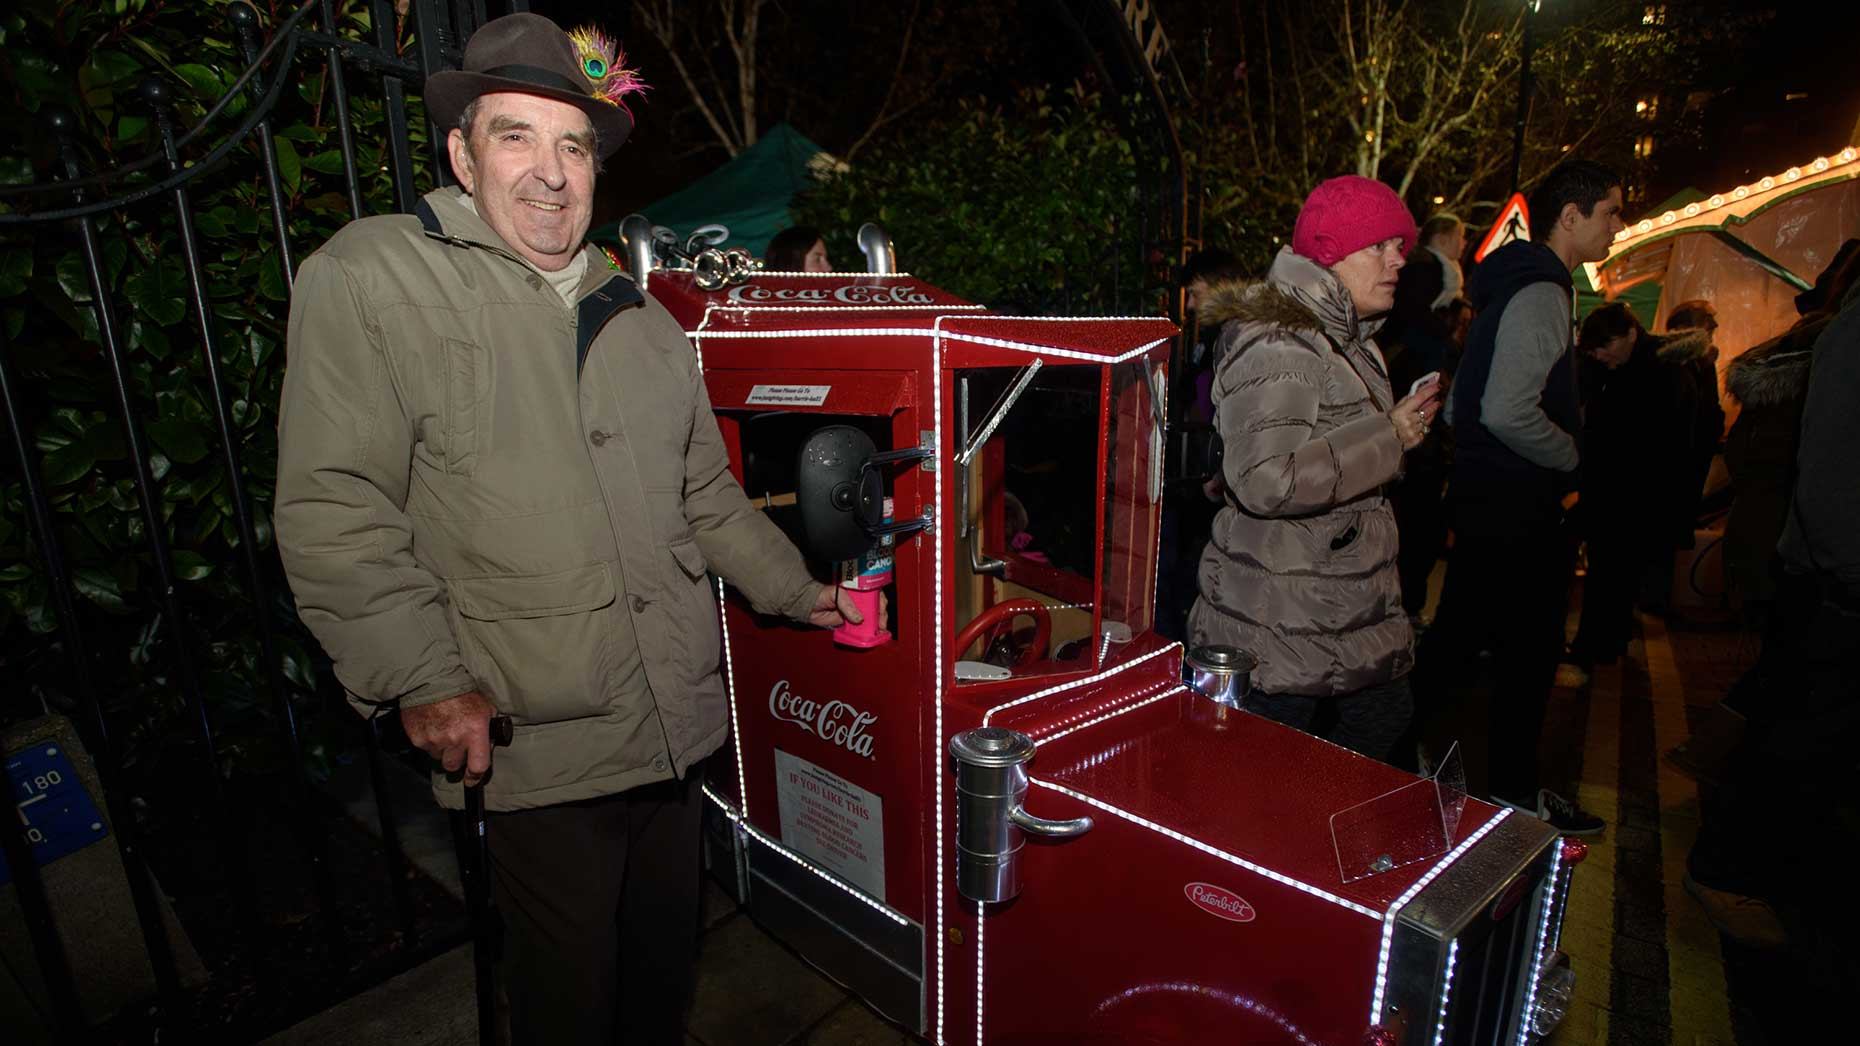 Barry Hall and his truck made an appearance at the switch on event. Photo: Steve Smailes for The Lincolnite